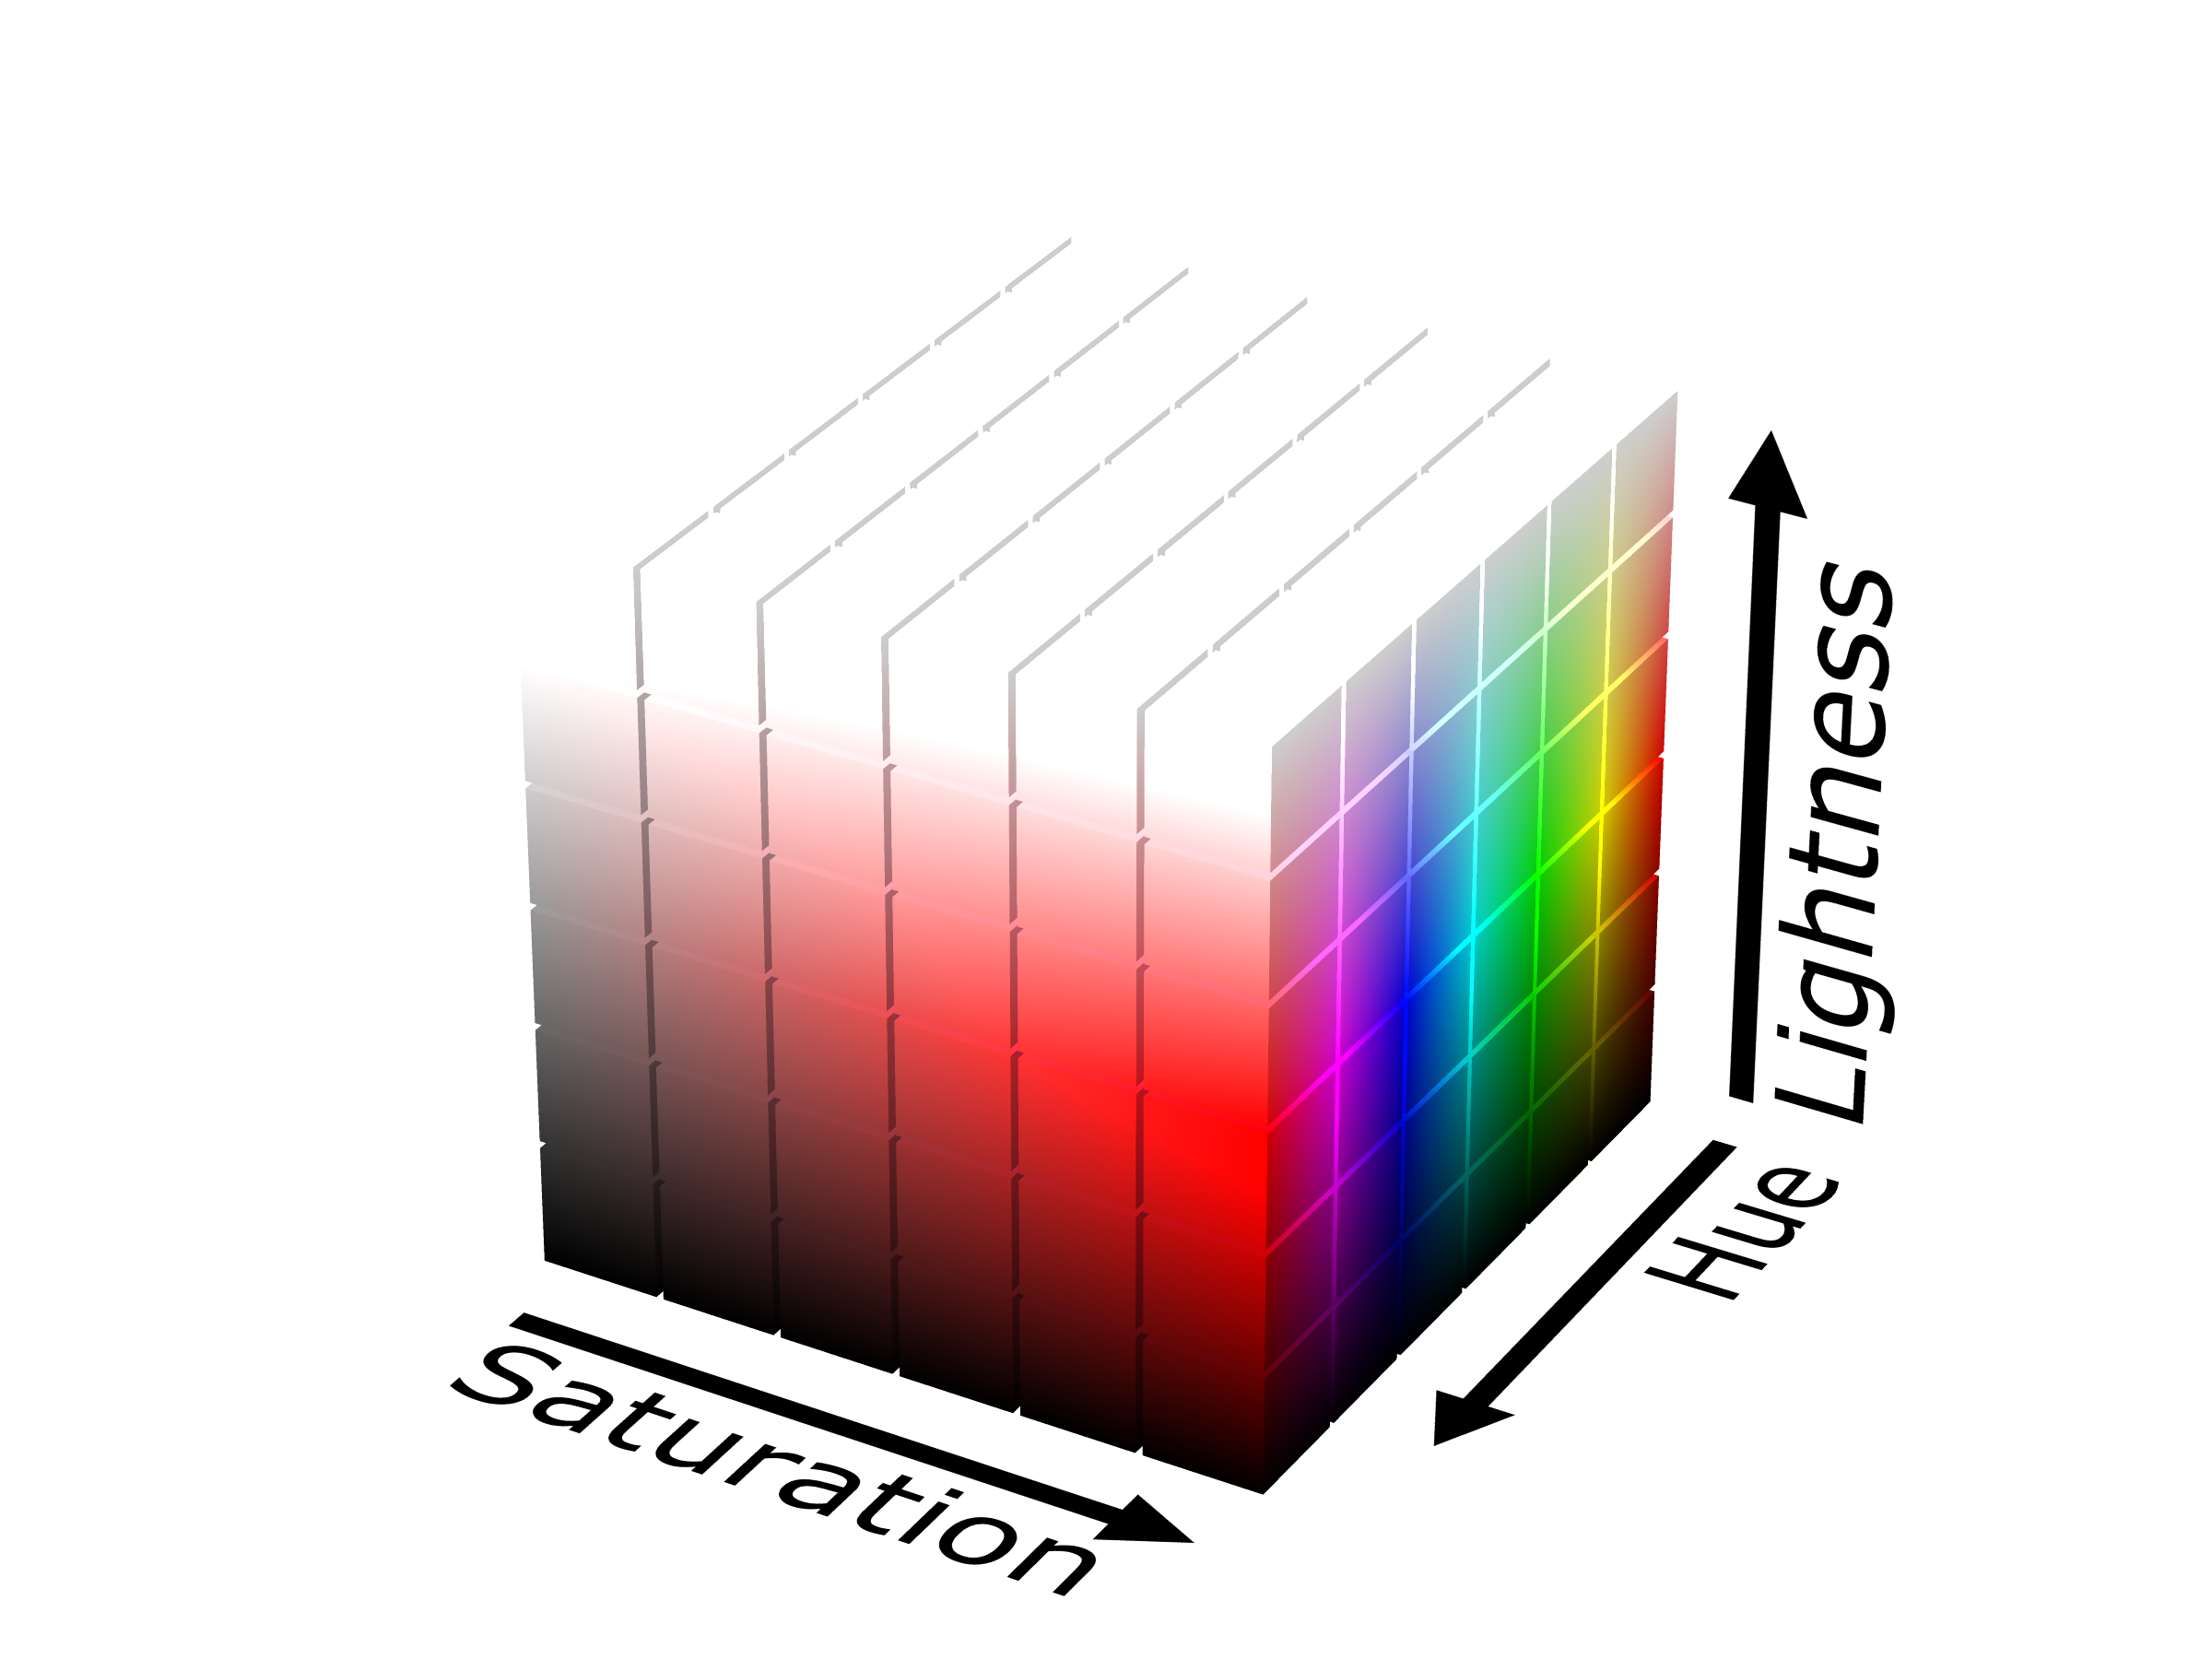 File:HSL color solid cube png - Wikimedia Commons